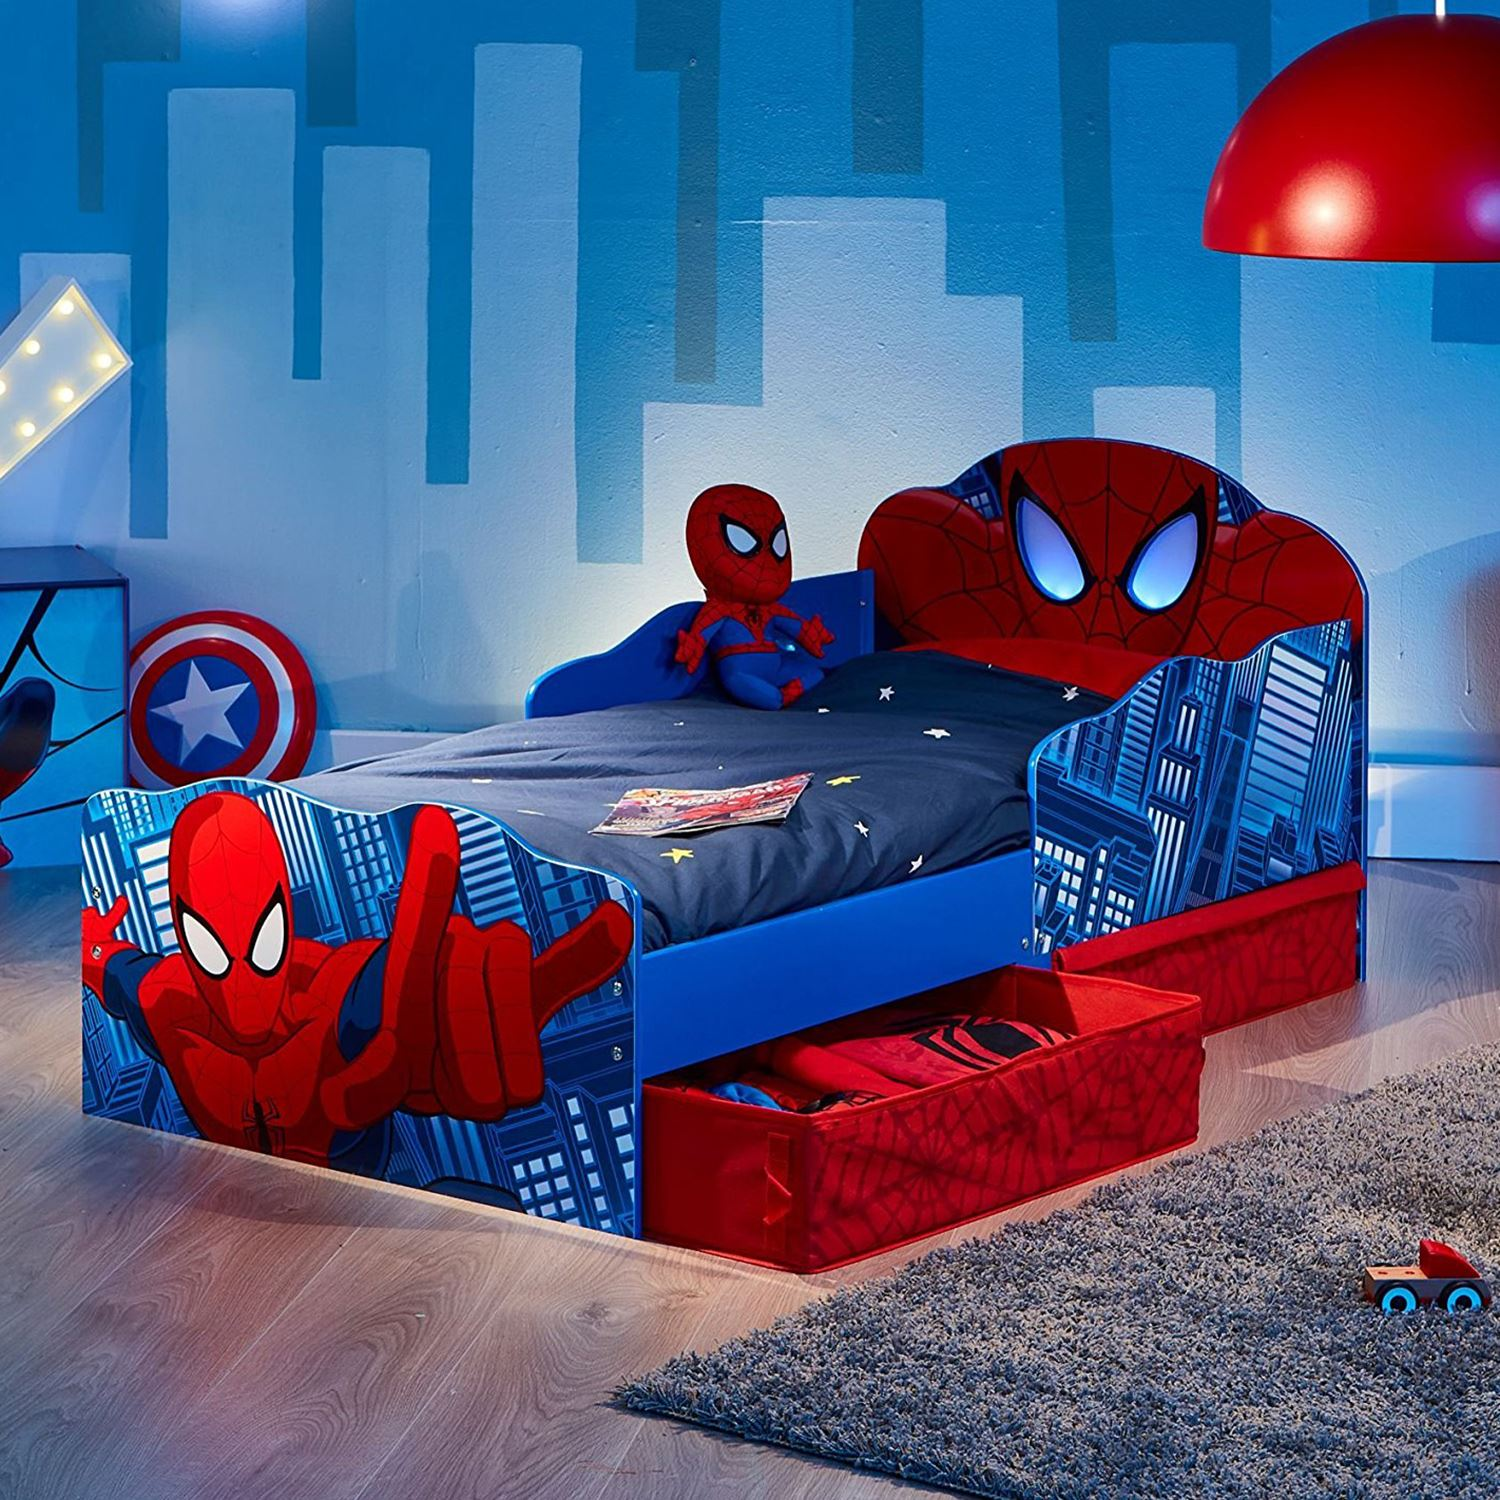 Boy Bedroom Storage: SPIDERMAN TODDLER BED & STORAGE + MATTRESS OPTIONS